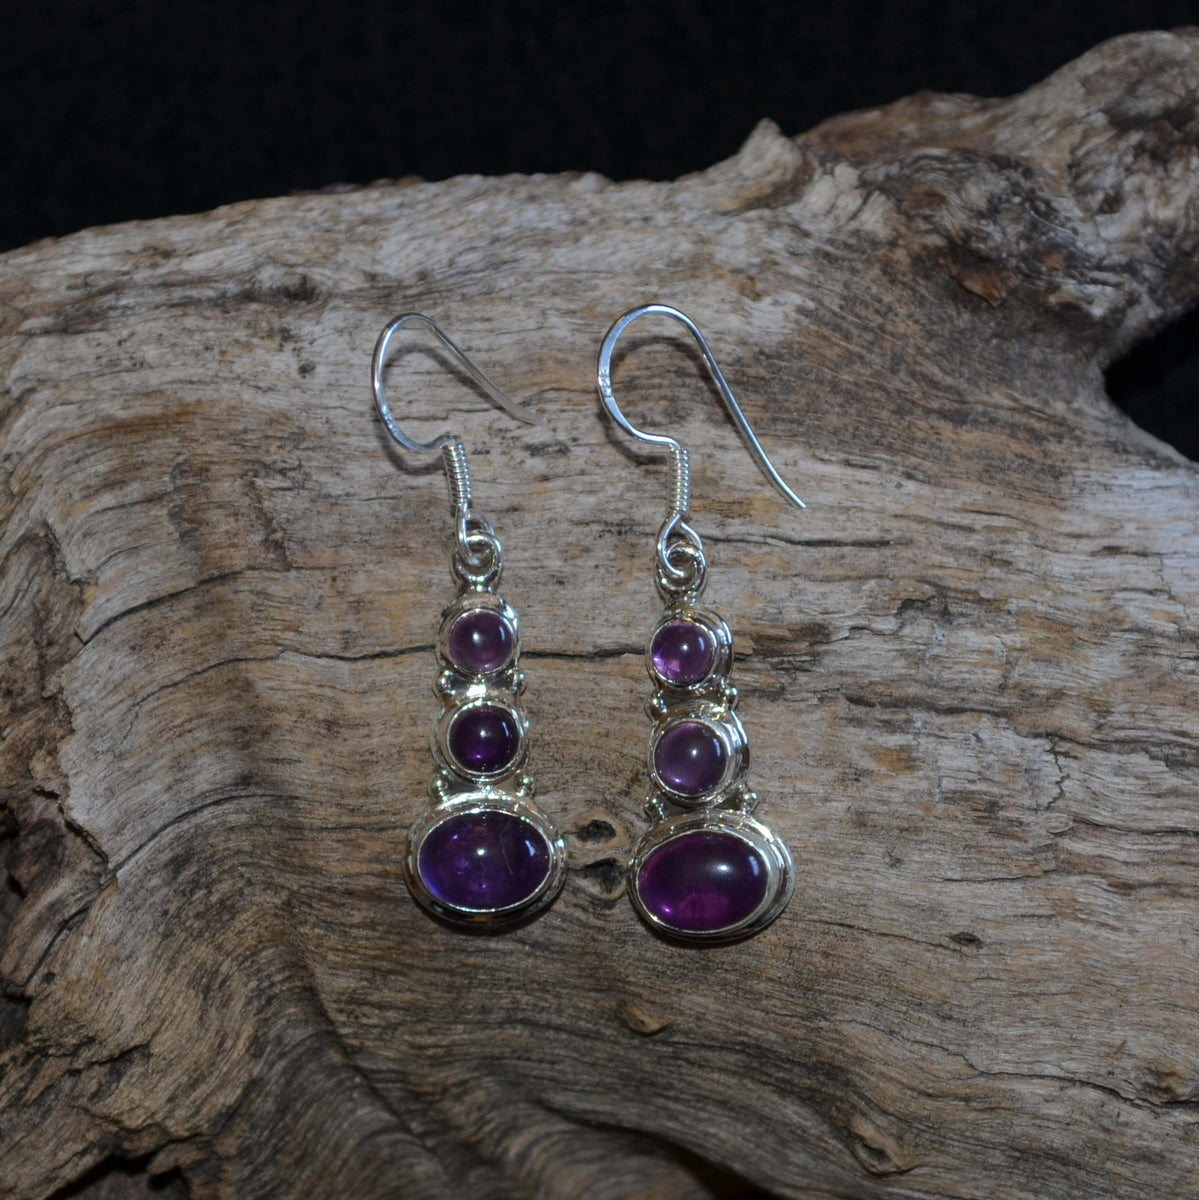 Amethyst 925 Silver Triple Drop Earrings - Intuition Protection - Available Now at Illiom Crystals - We have Afterpay